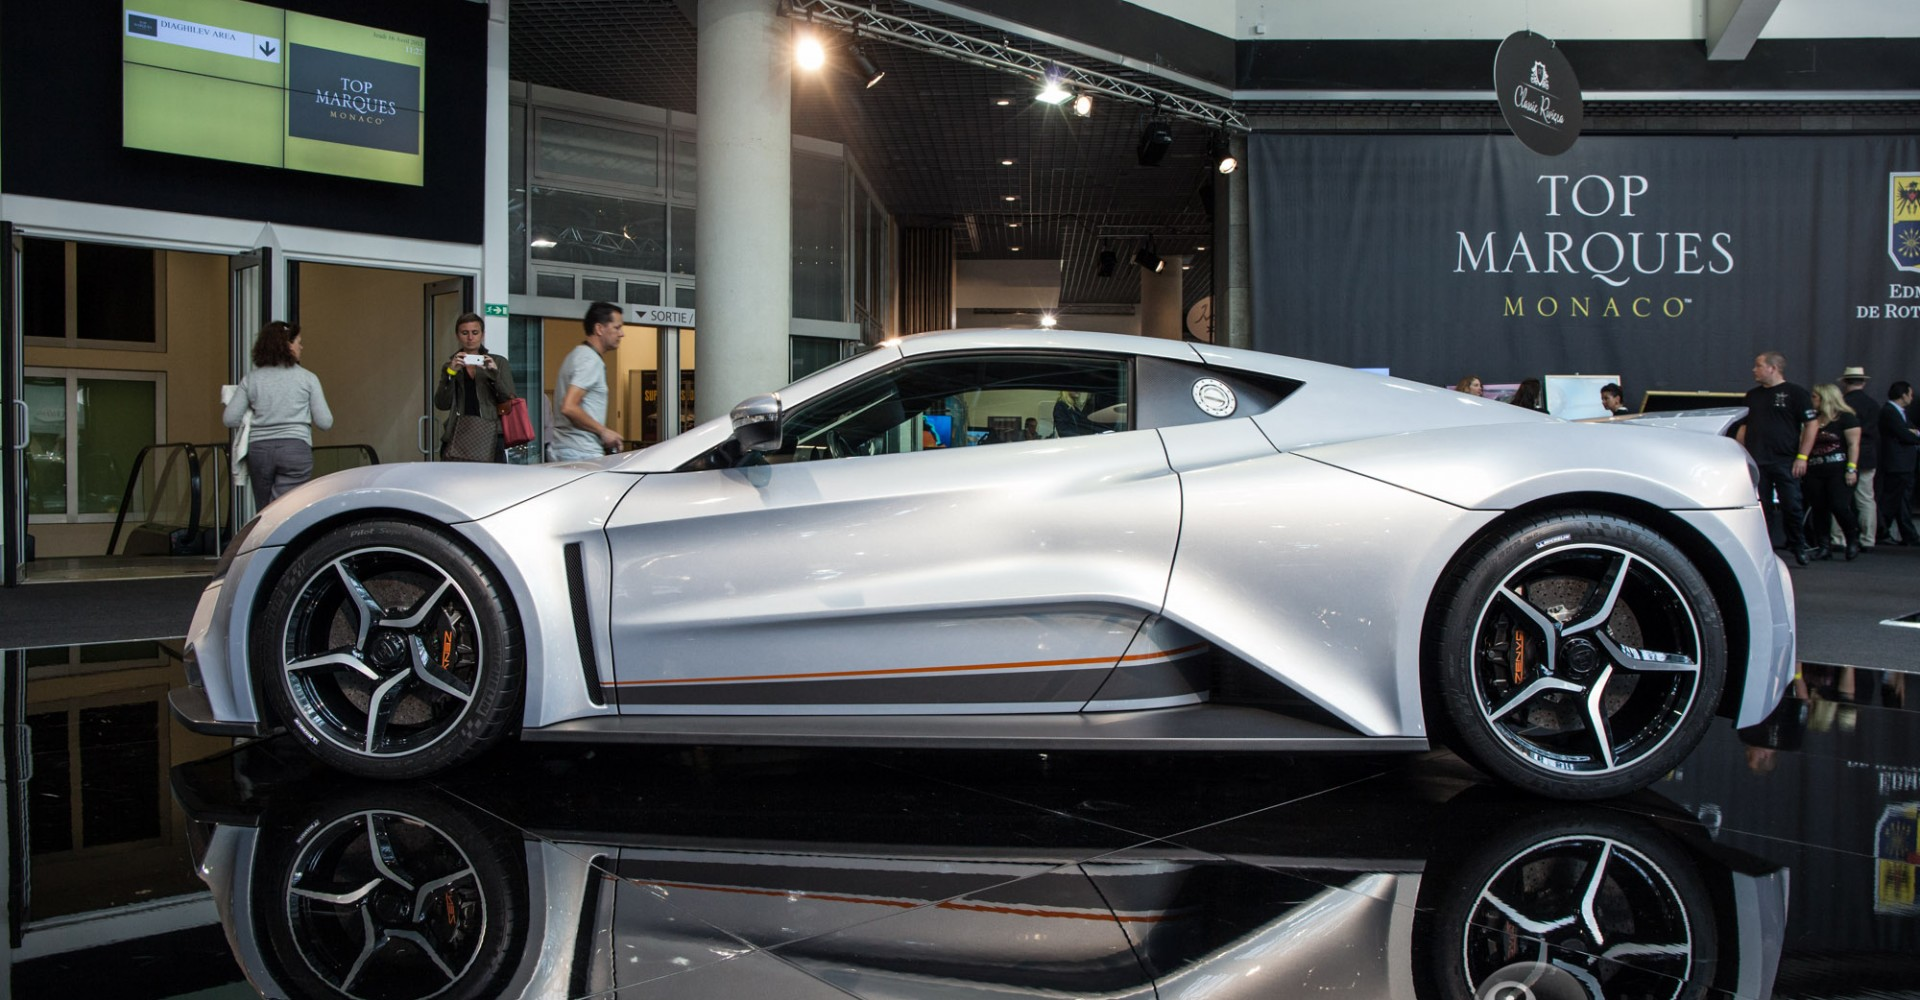 The Bonkers Hypercars Of The Top Marques Monaco Show